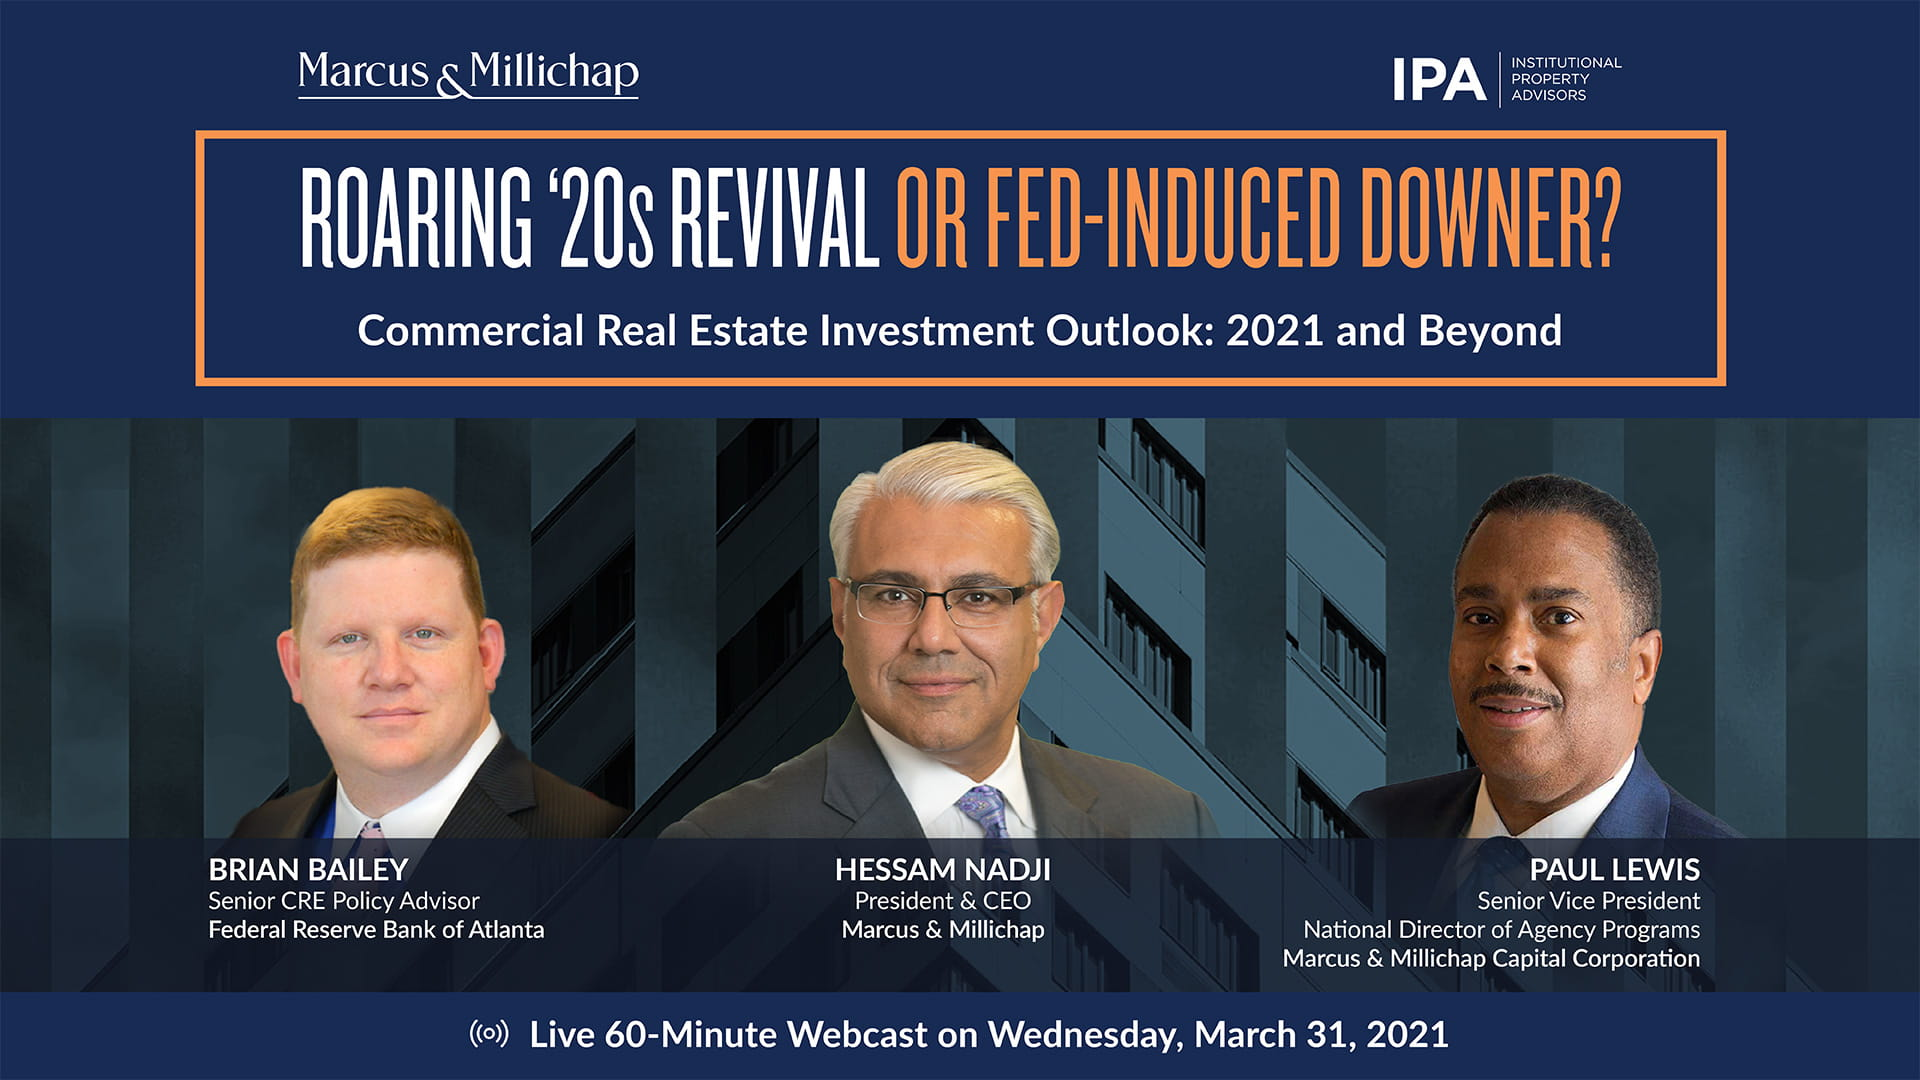 Commercial Real Estate Investment Outlook: 2021 and Beyond